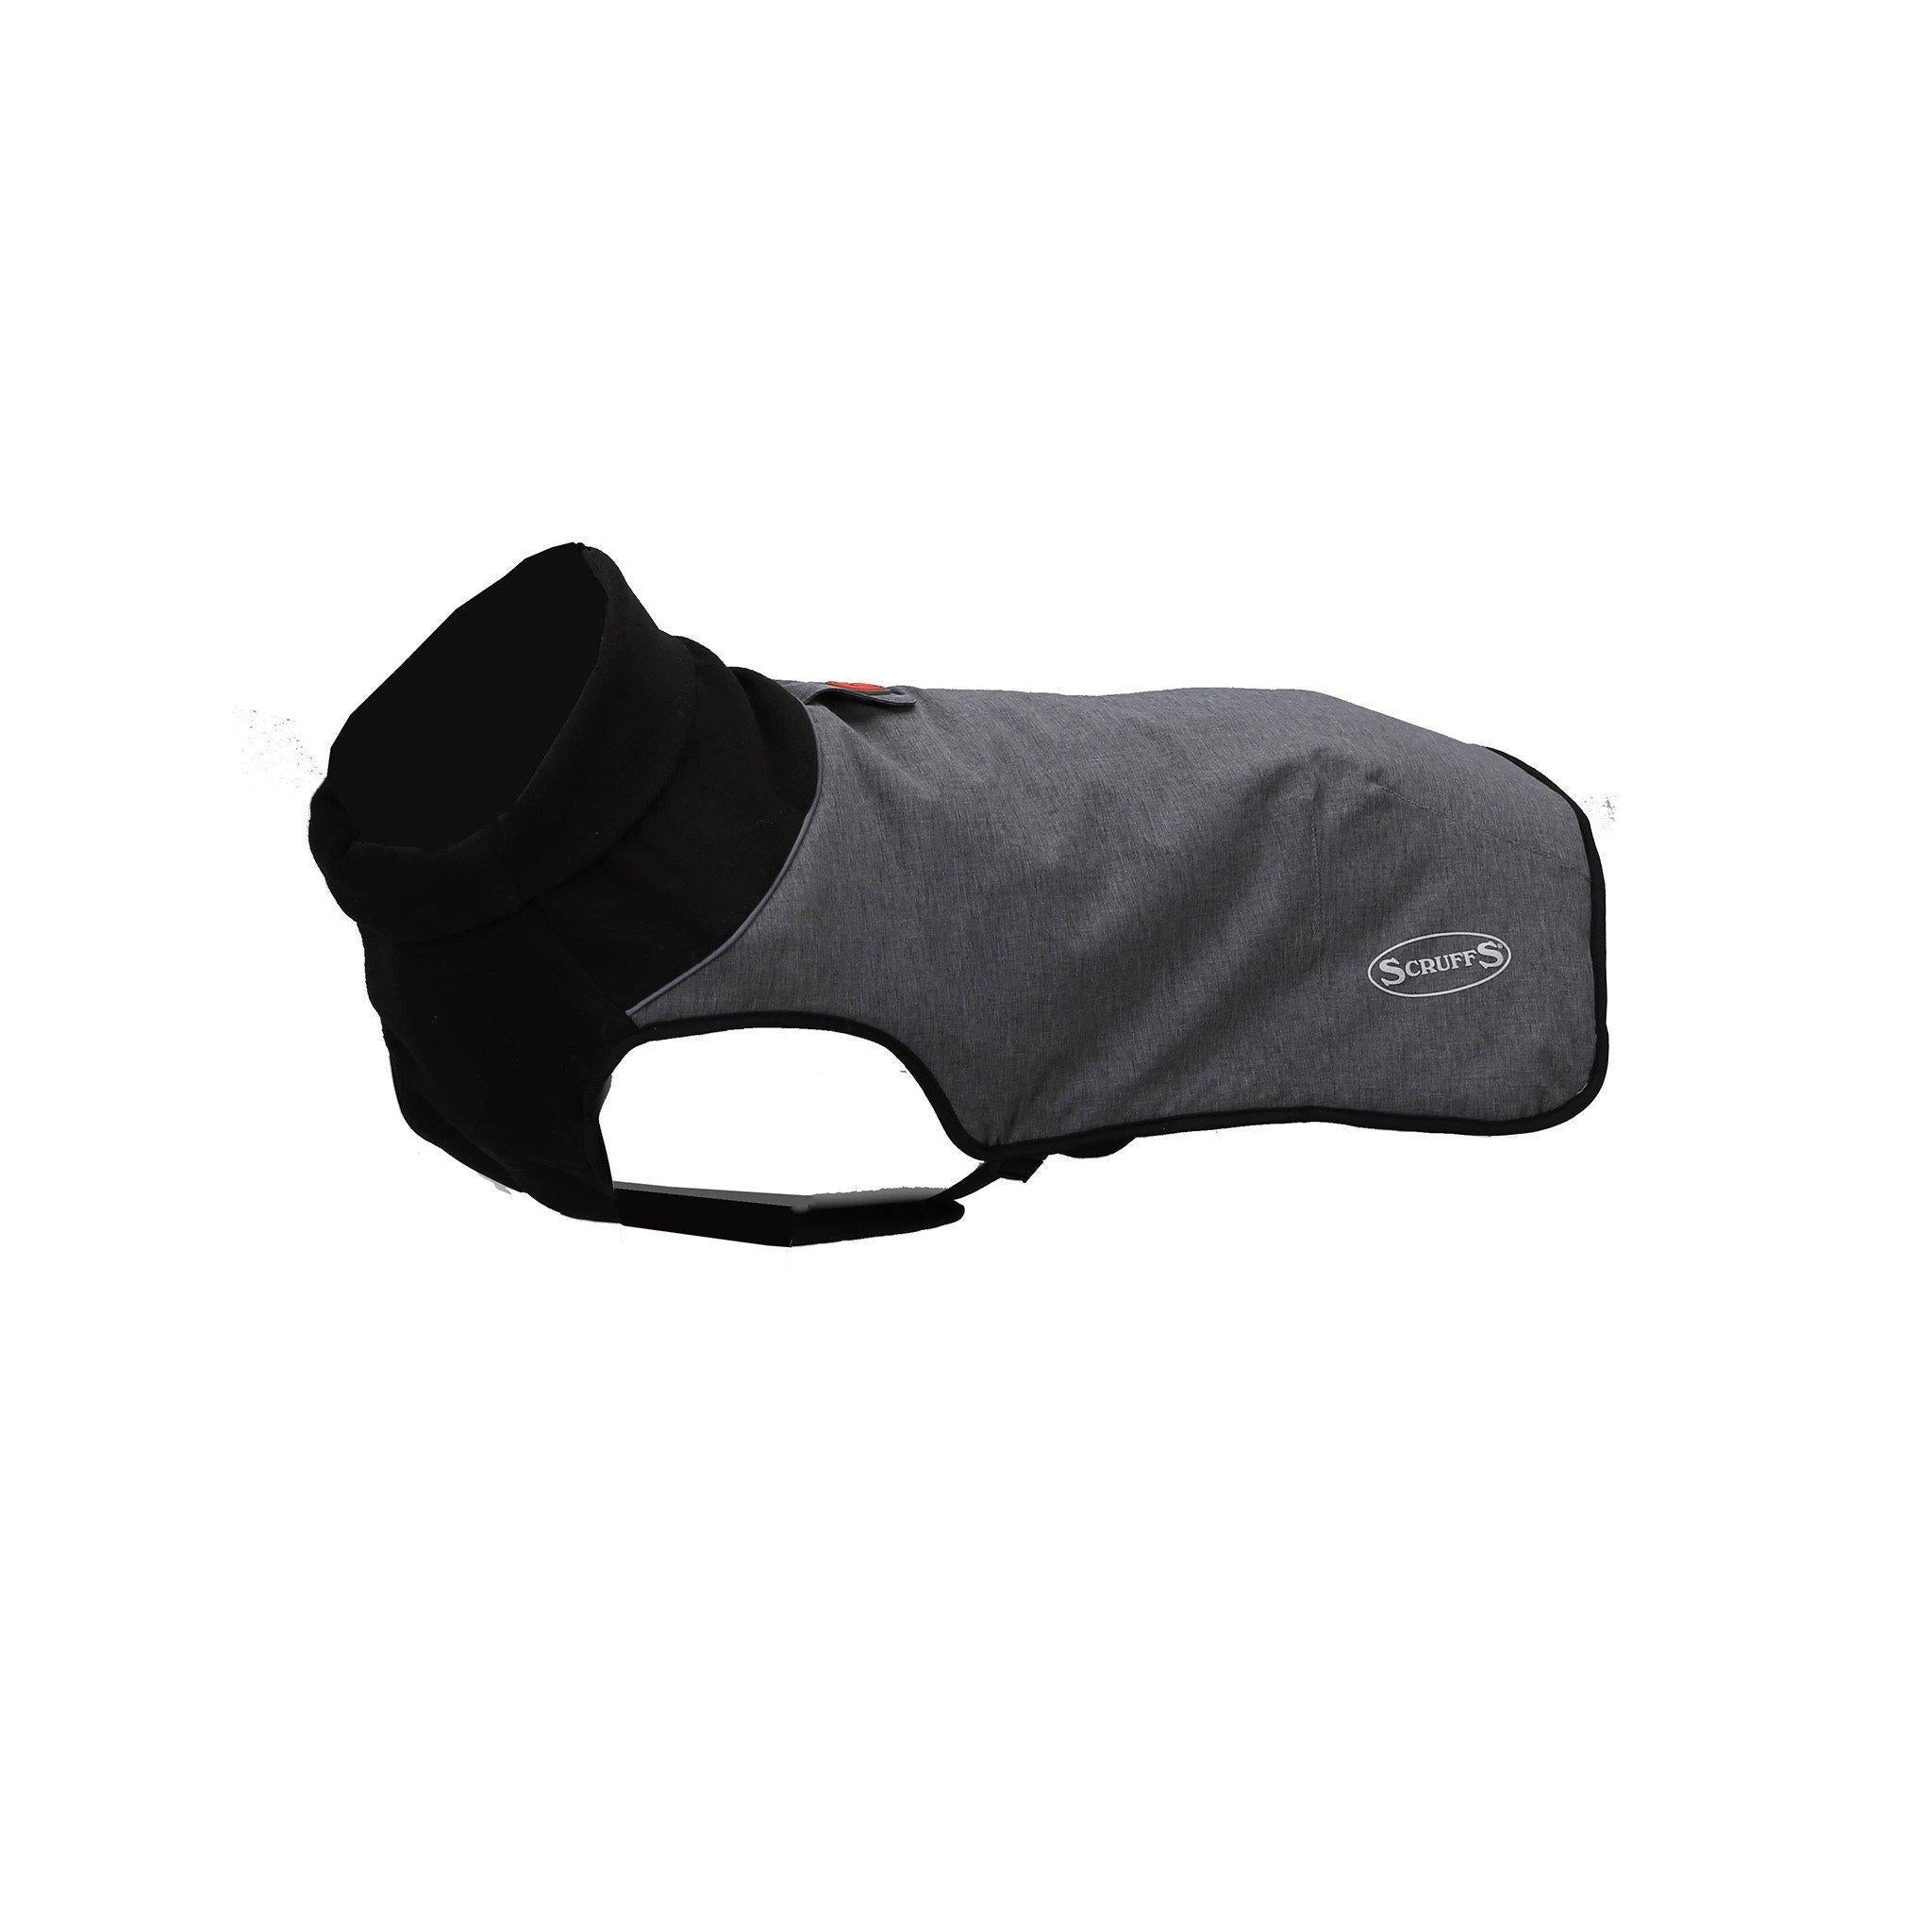 Scruffs Thermal Dog Coat - Cajun Grey - comfypet